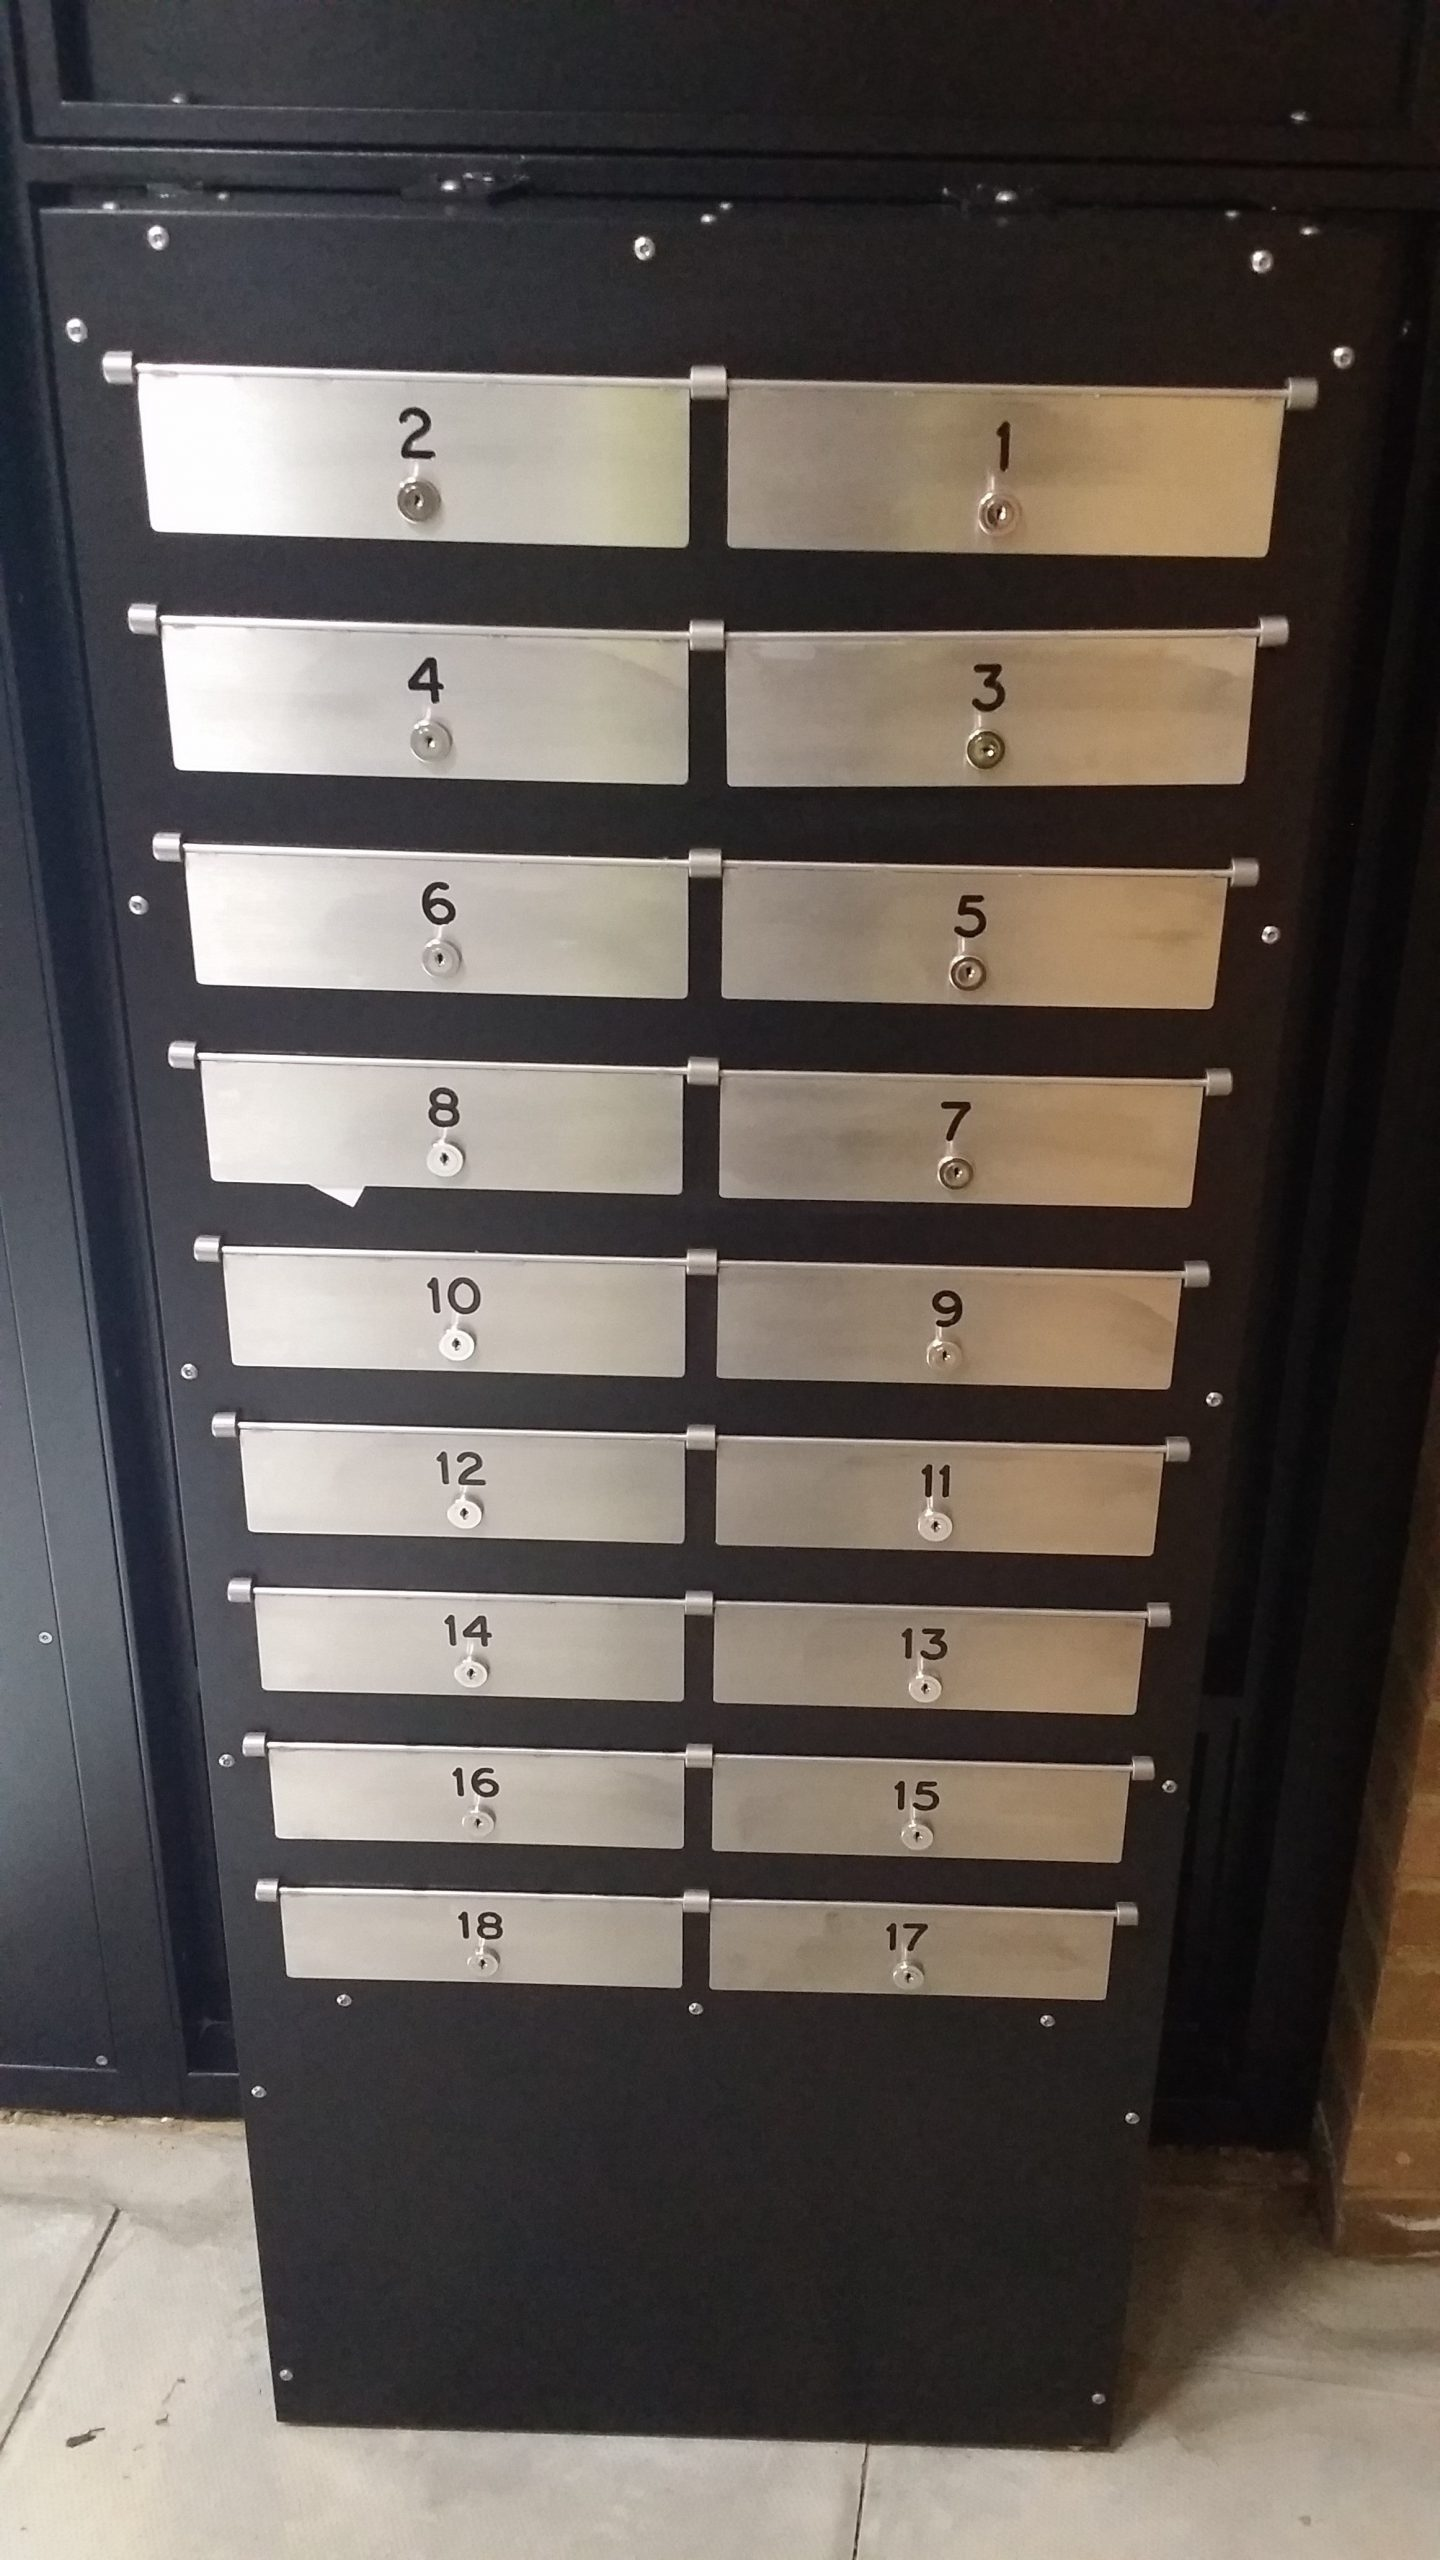 SBD STEEL SECURITY MAILBOX SYSTEM.